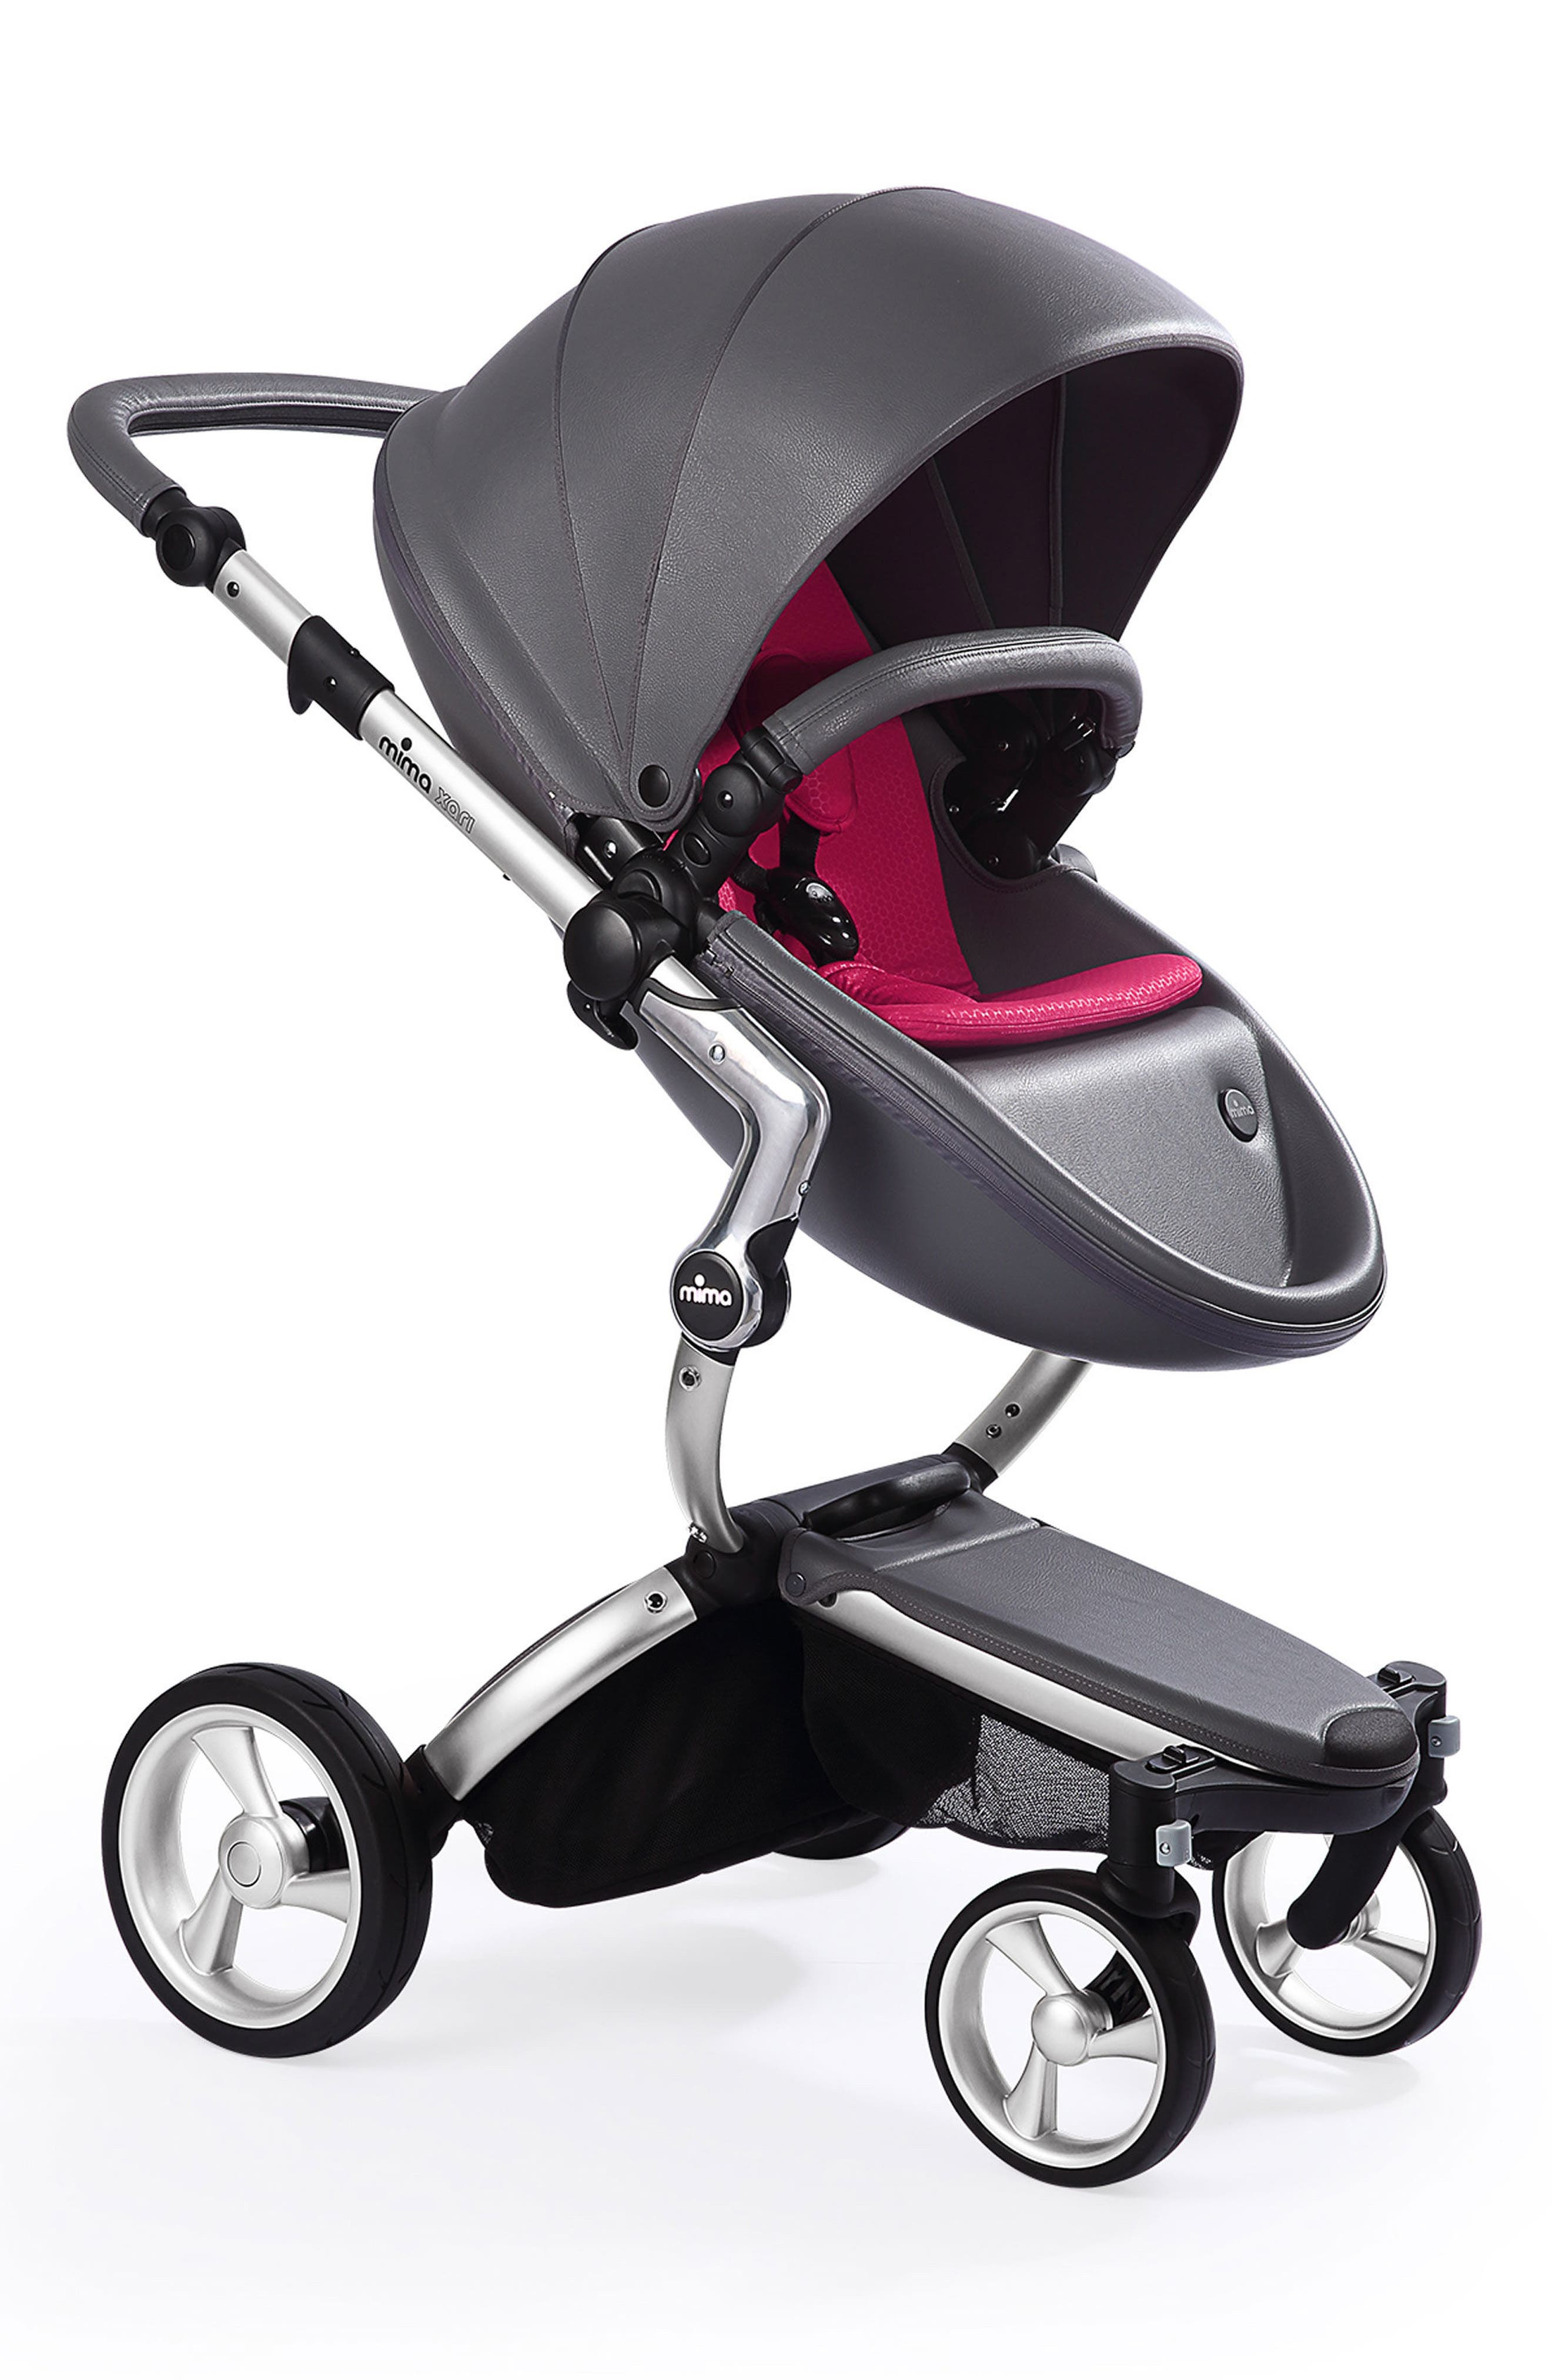 Alternate Image 1 Selected - Mima Xari Aluminum Chassis Stroller with Reversible Reclining Seat & Carrycot